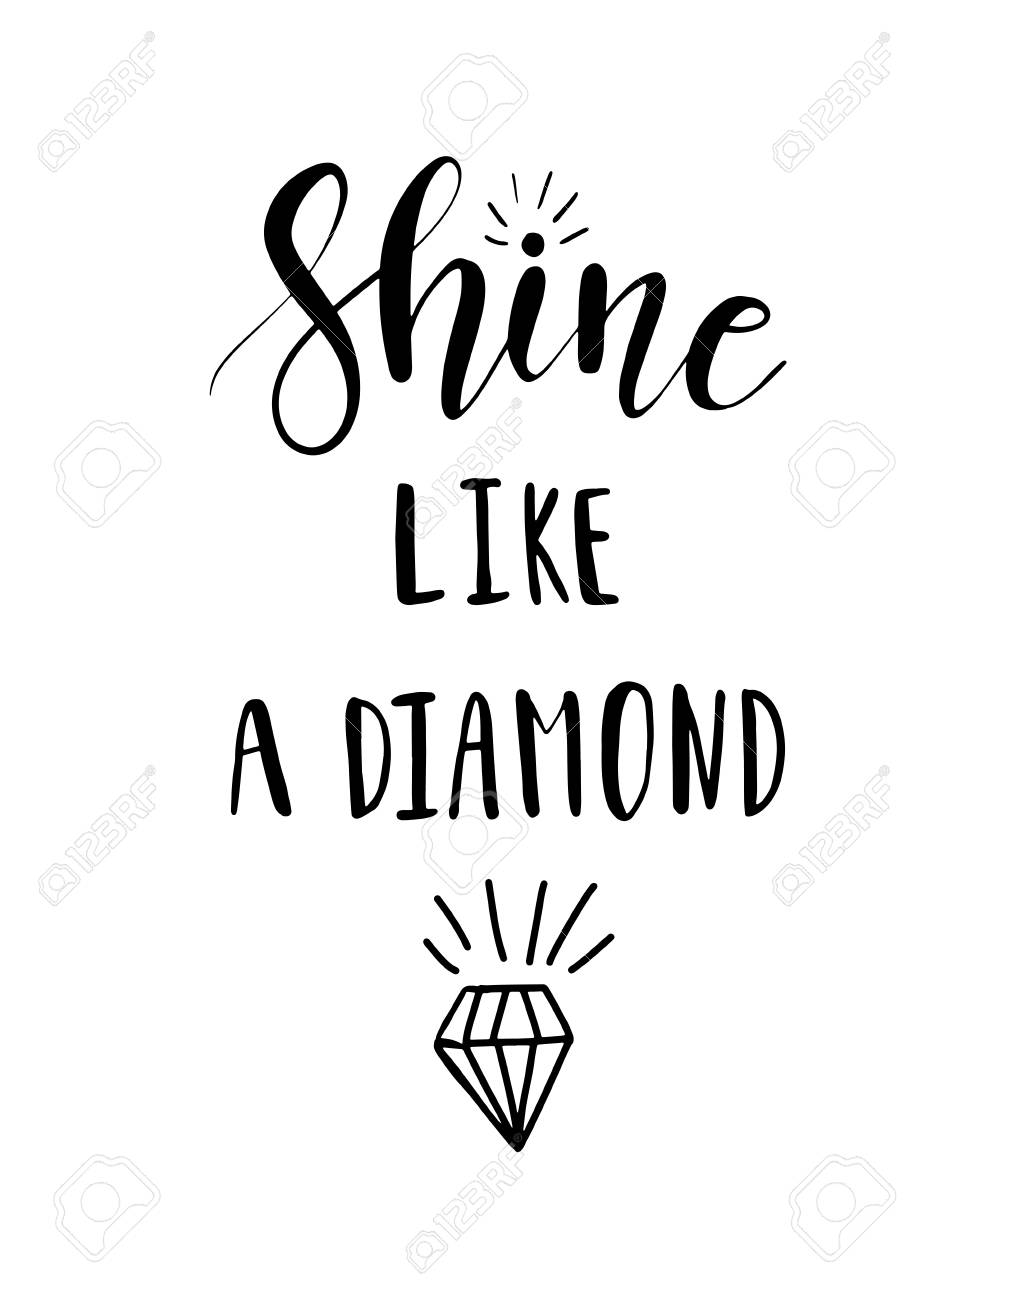 diamond lettering vector nude inspiration like bright stock pink quote photo hand template shine on background a